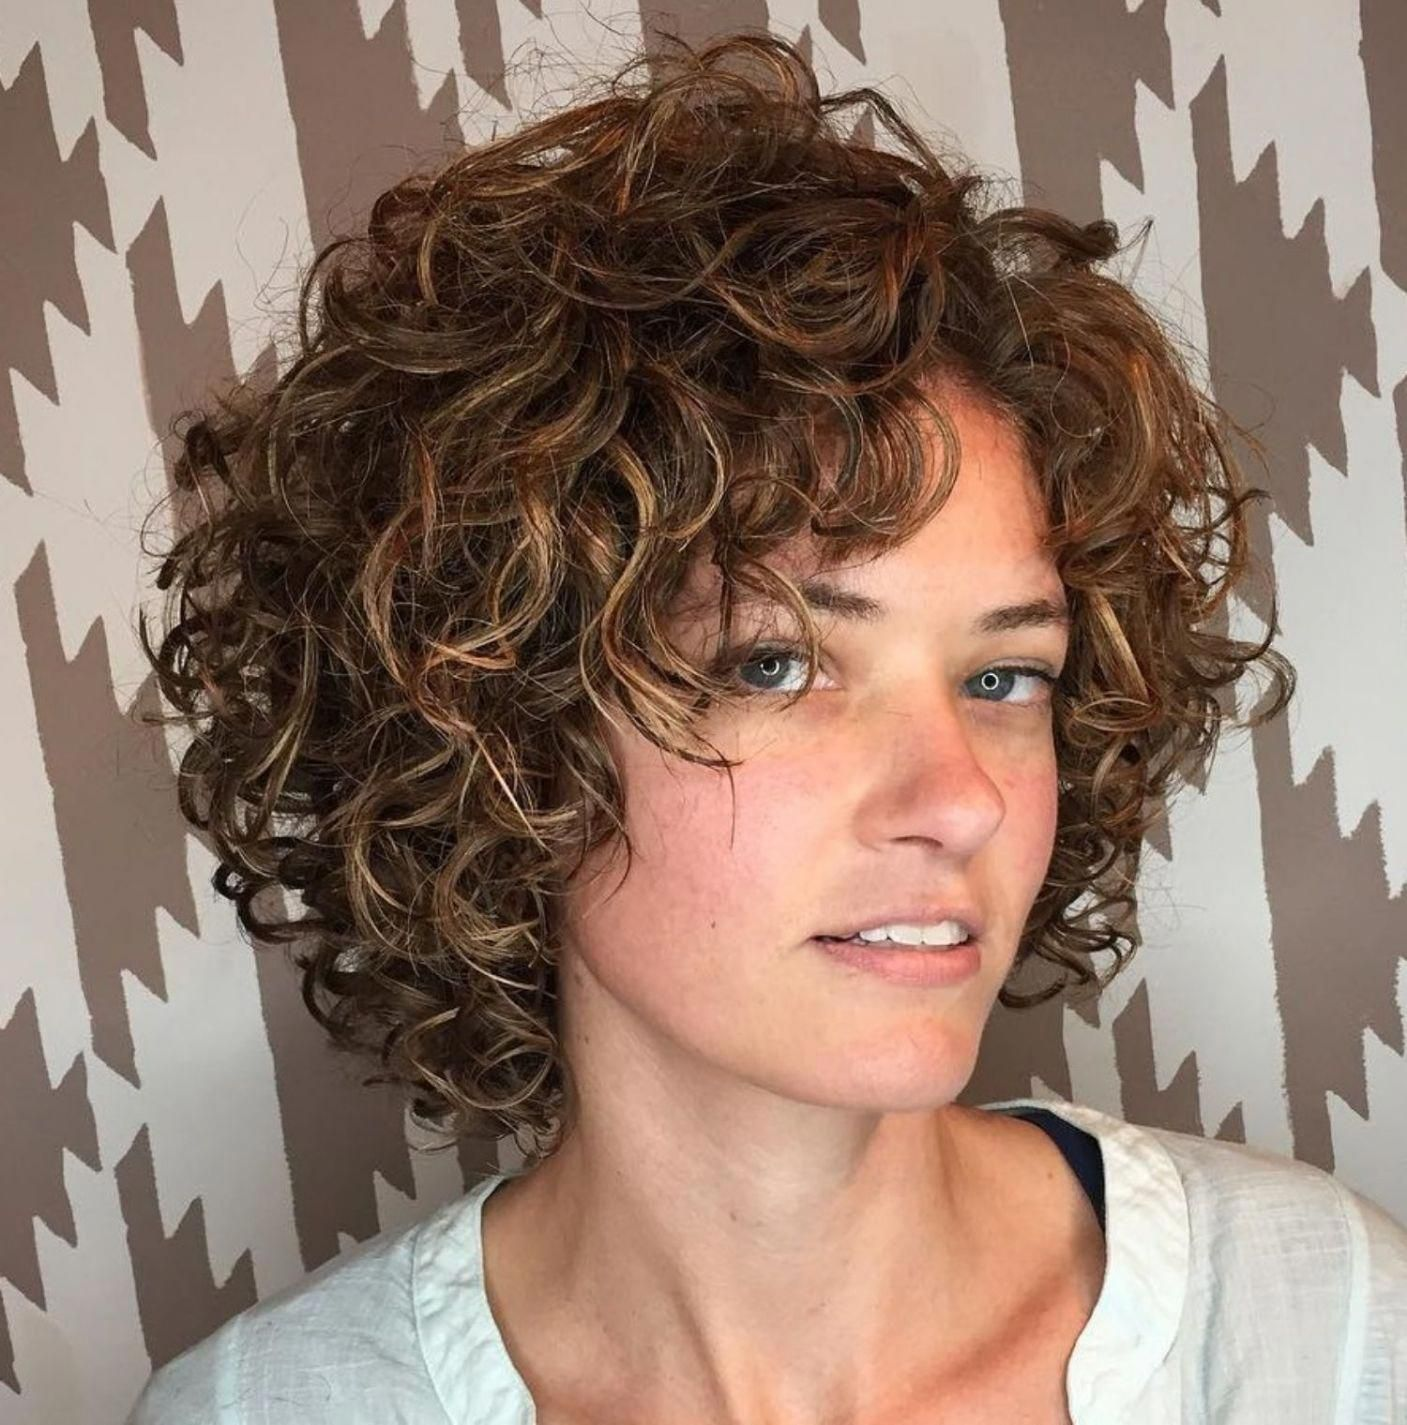 65 Different Versions of Curly Bob Hairstyle Well-